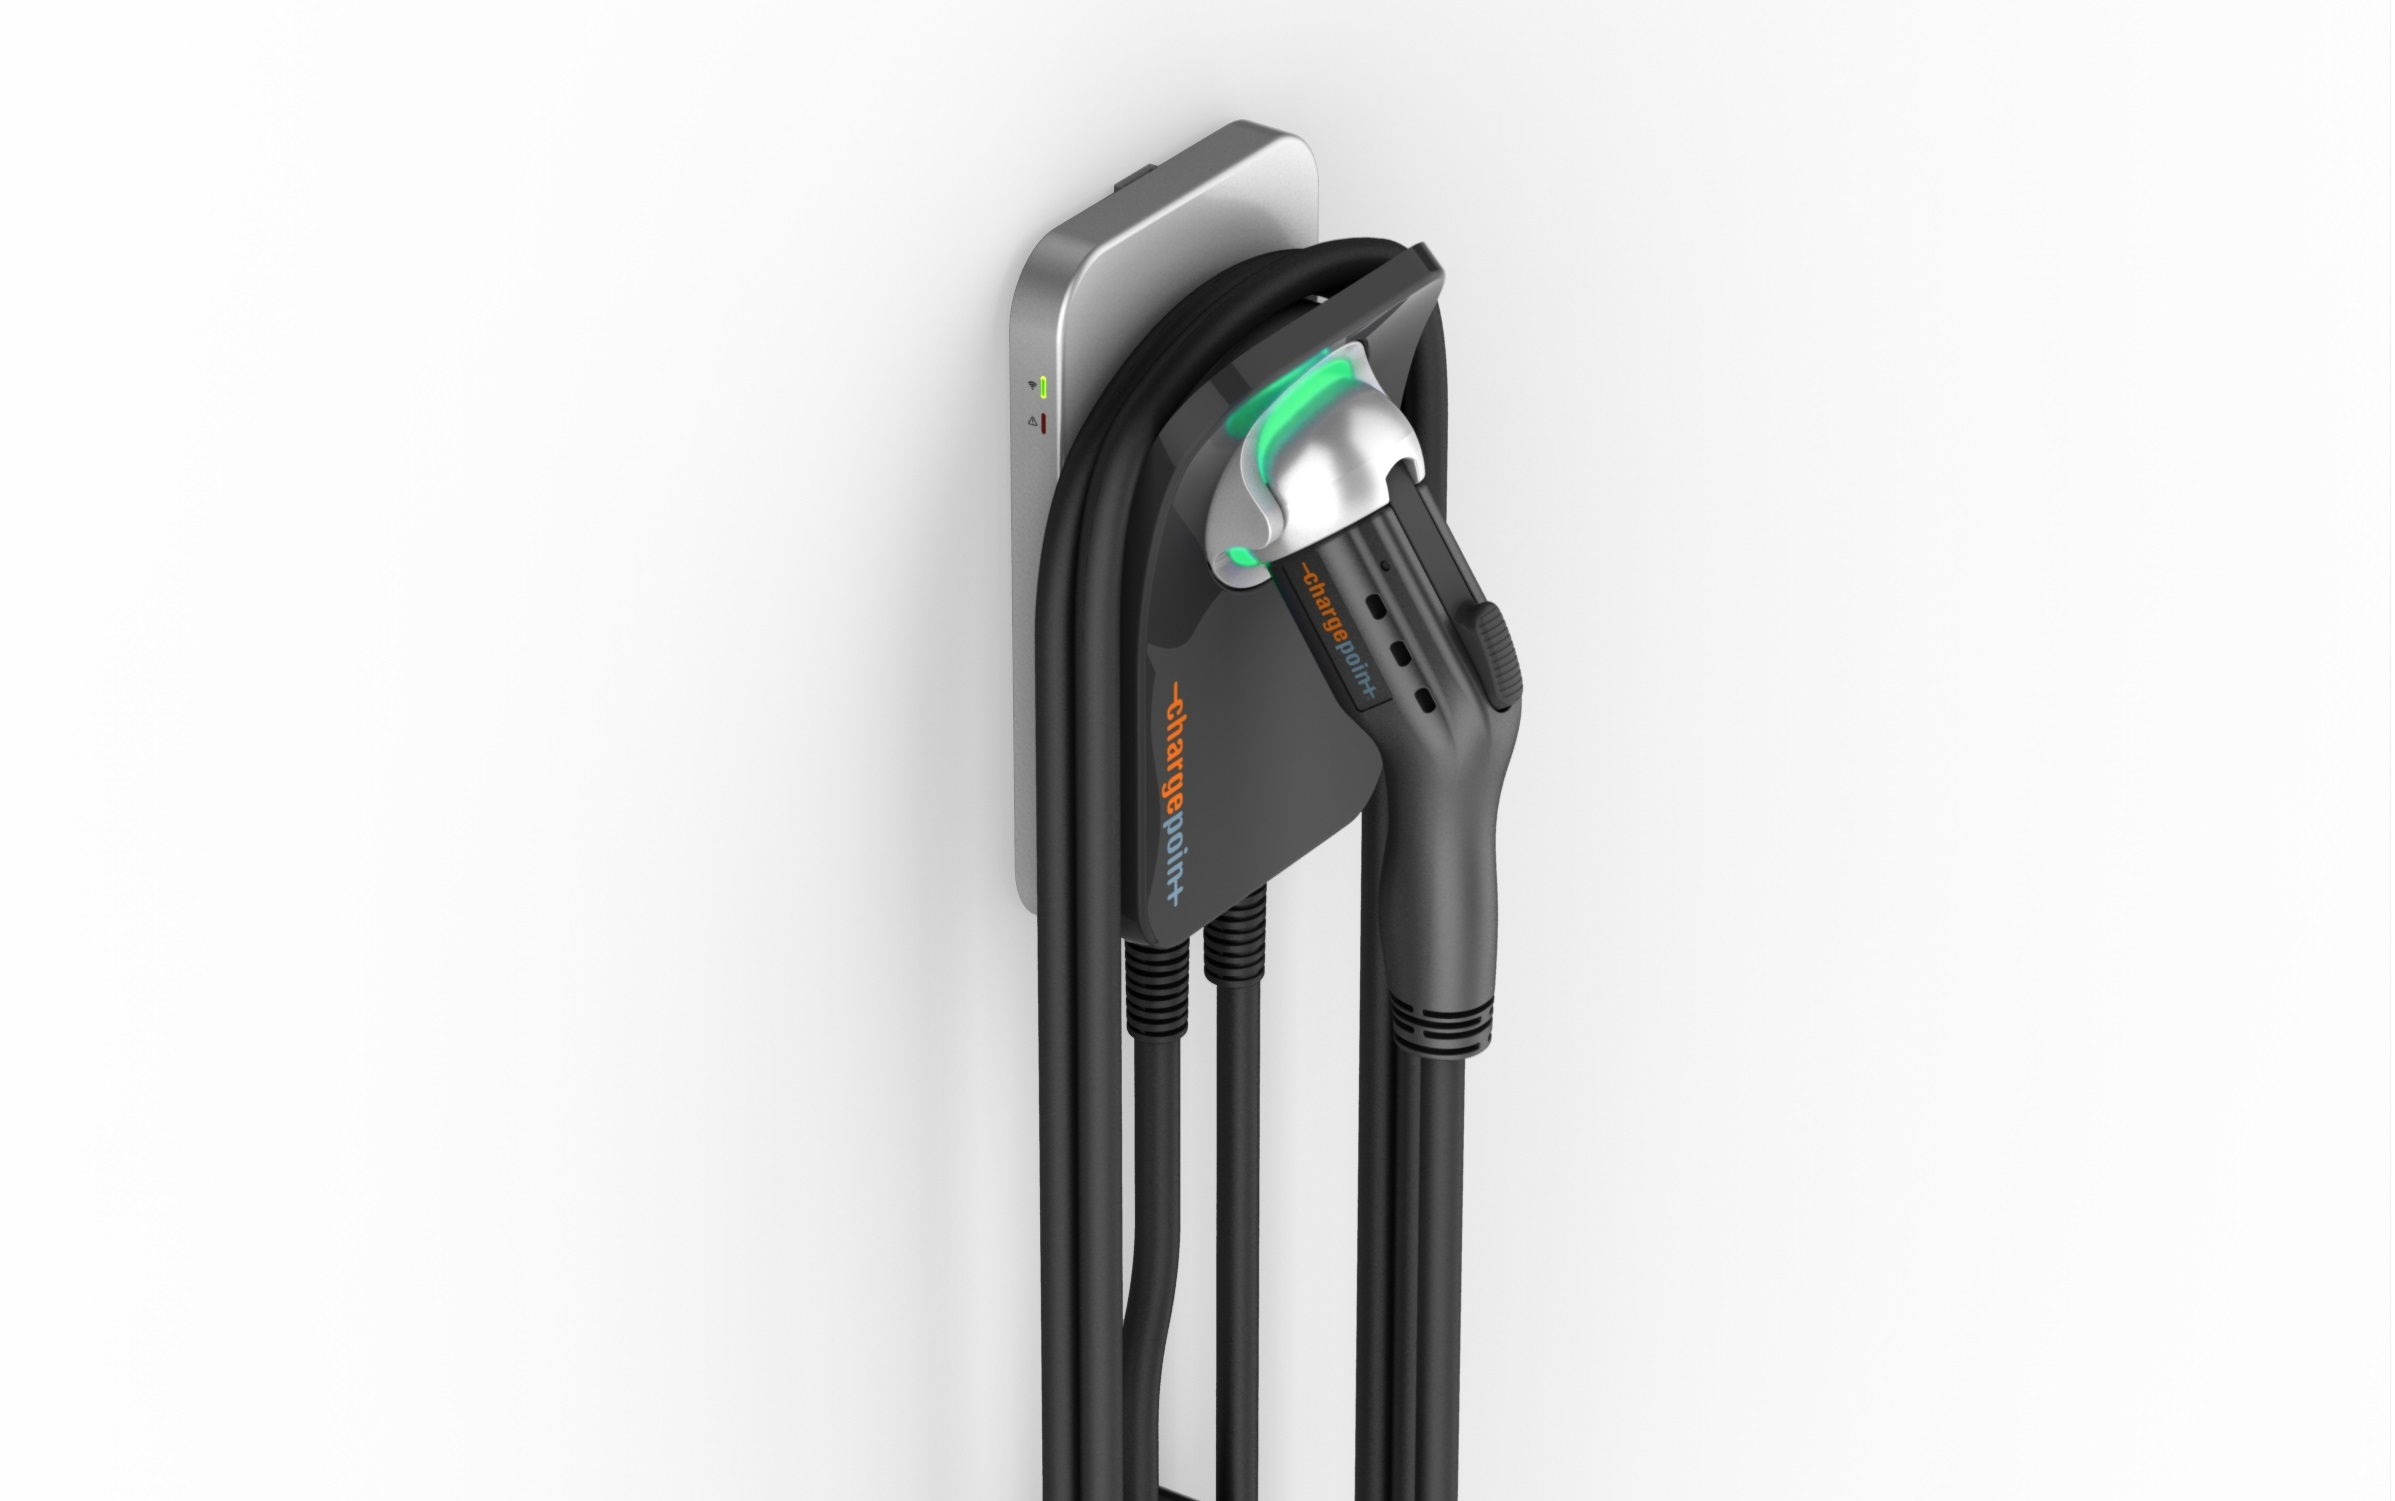 Chargepoint To Release Home Charging Station For Electric Cars